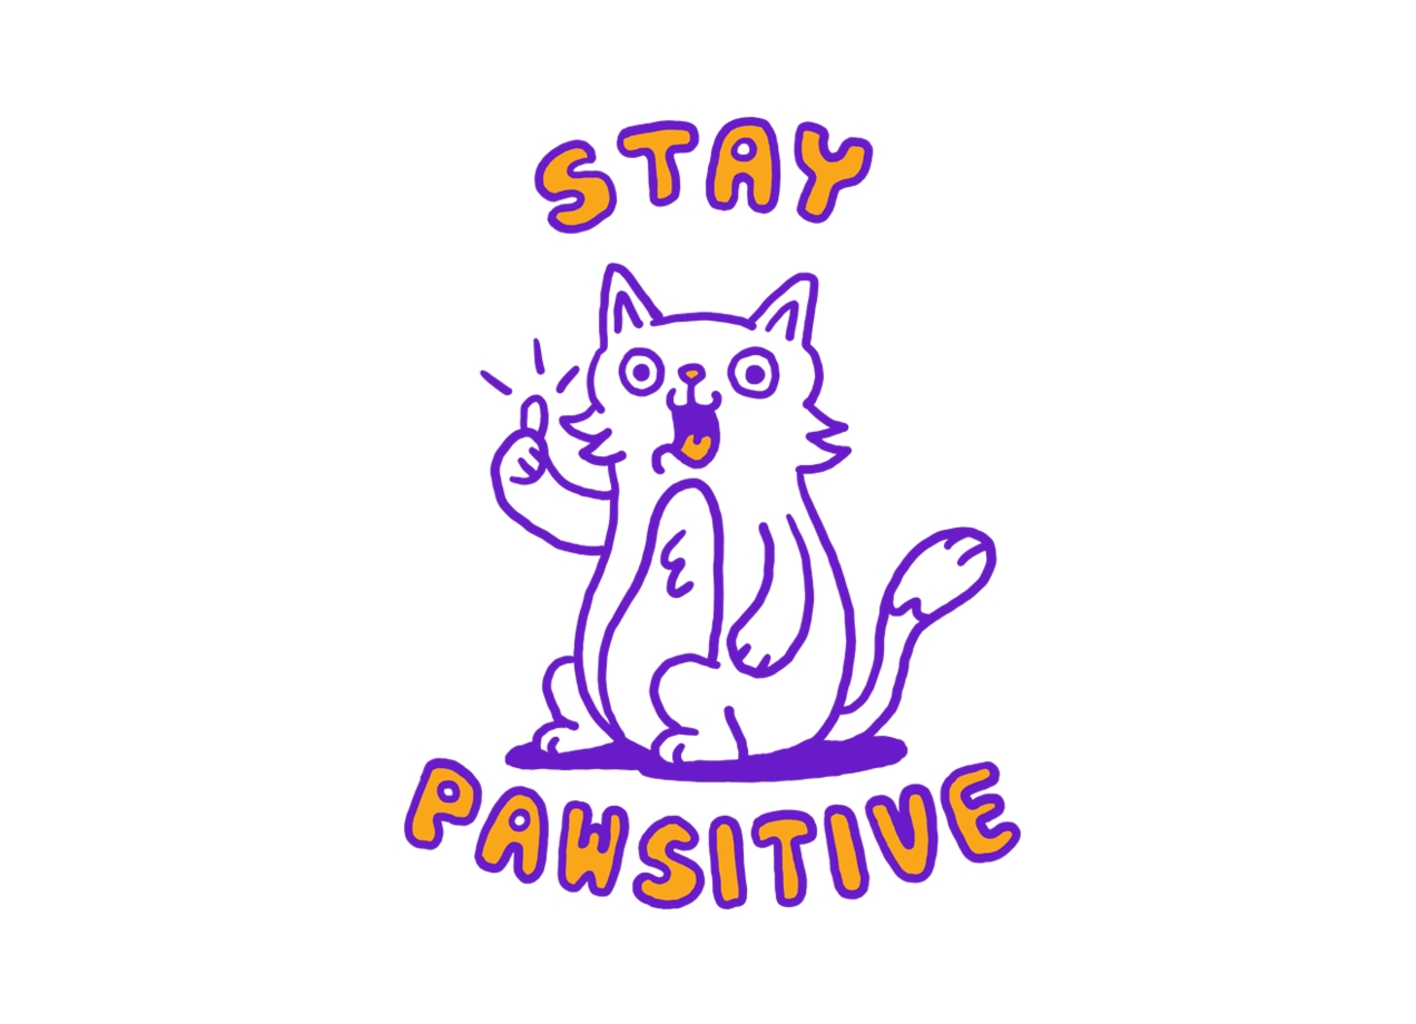 Threadless: Stay pawsitive